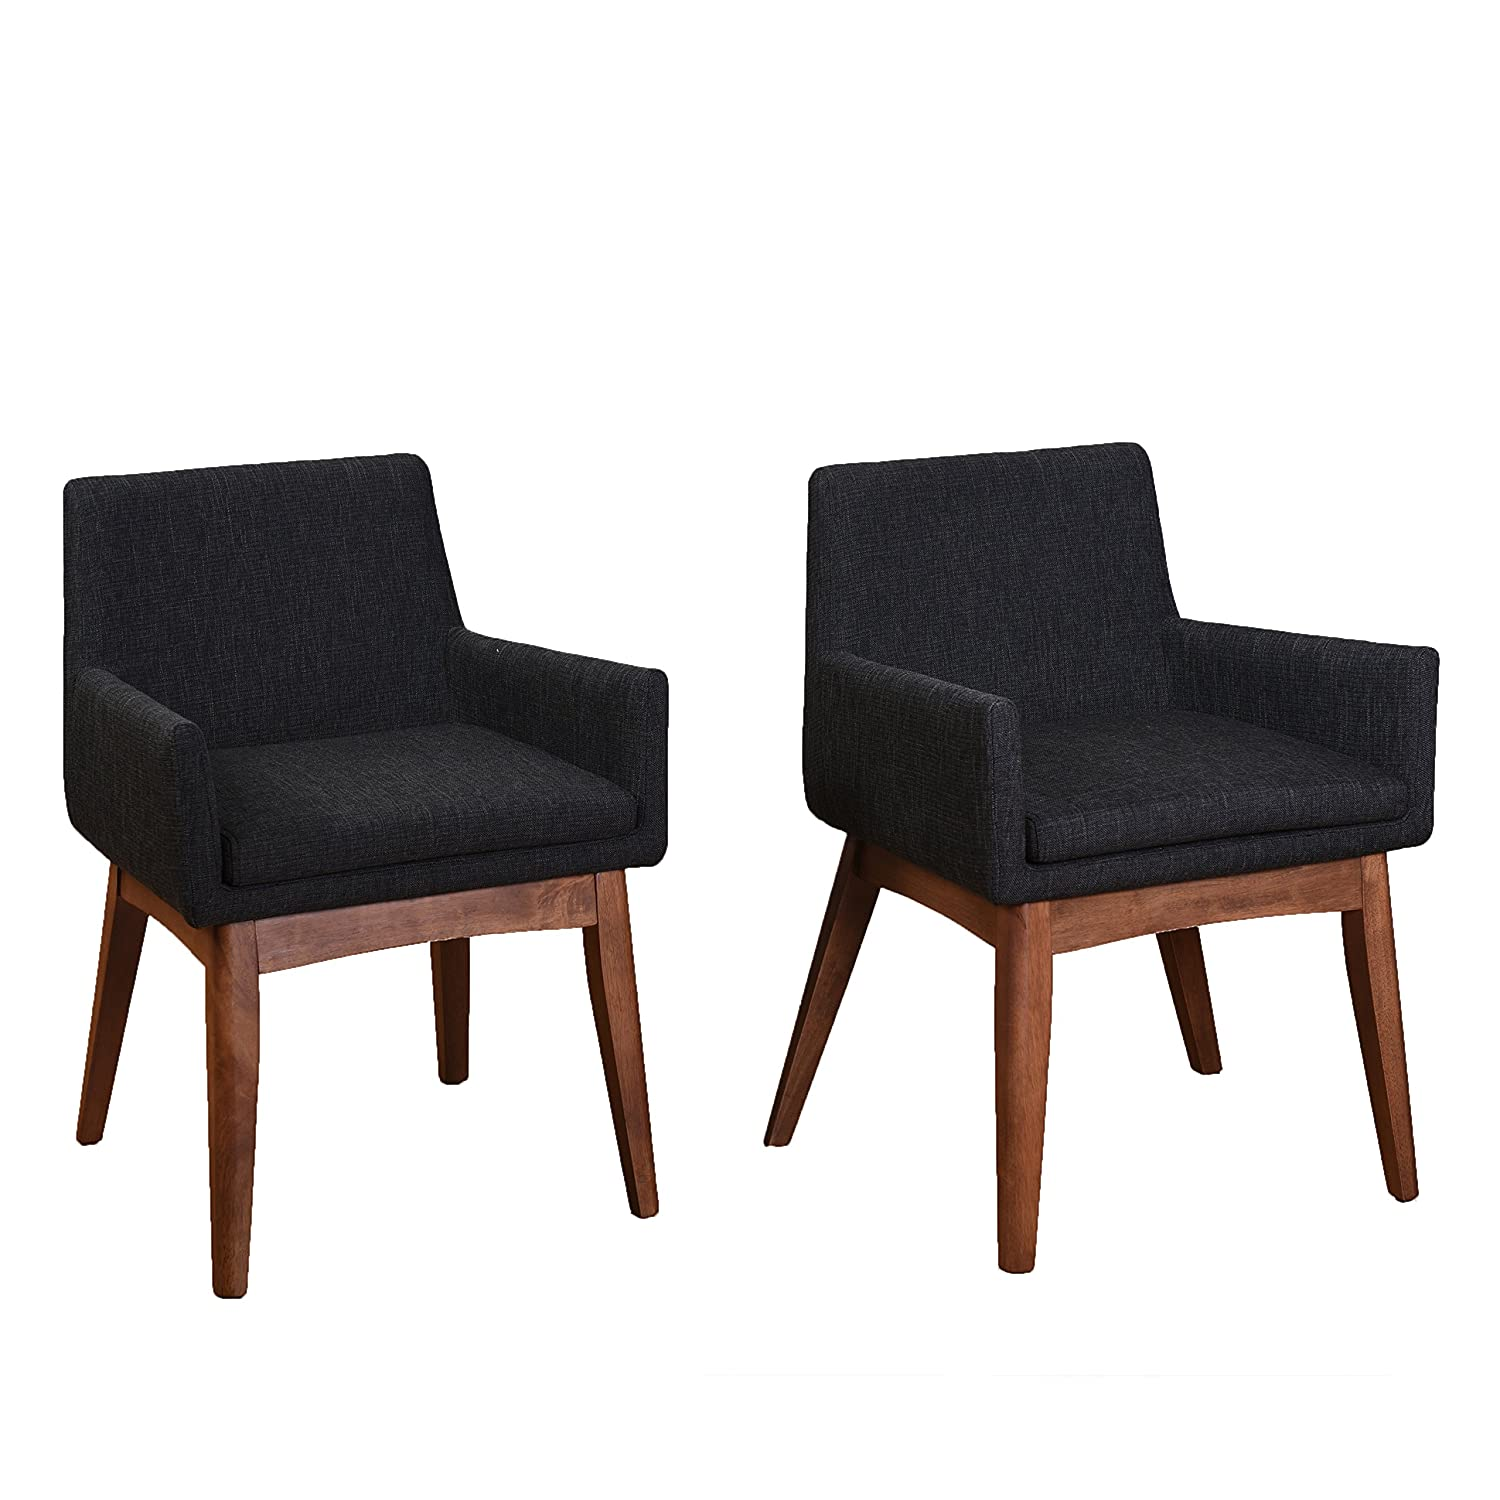 Midtown Concept Liquorice Textile Tiffany Mid-Century 2 Piece Living Room Dining Chair Set